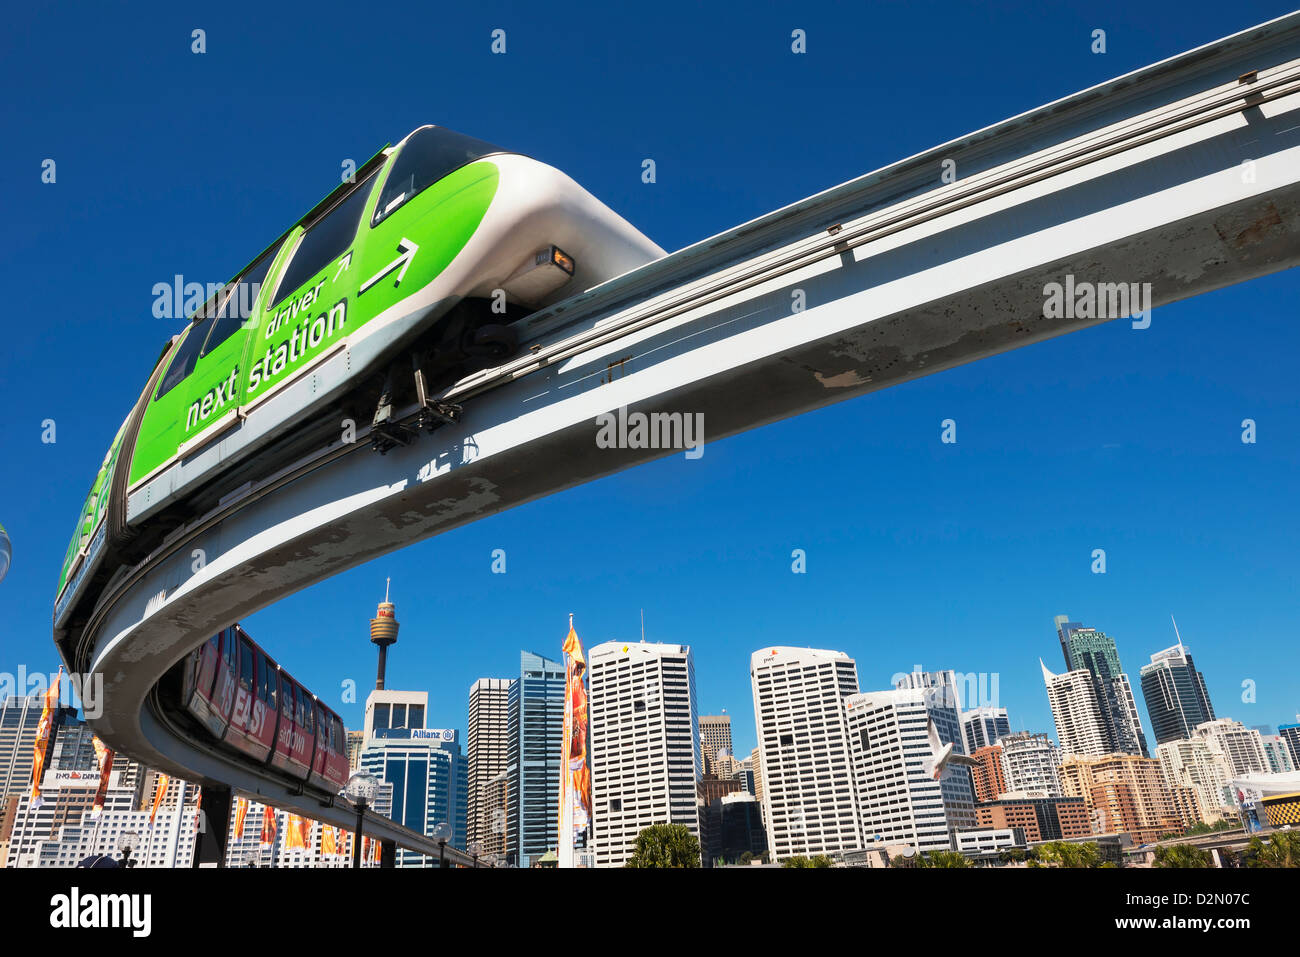 Einschienenbahn in Darling Harbour, Sydney, New South Wales, Australien, Pazifik Stockbild